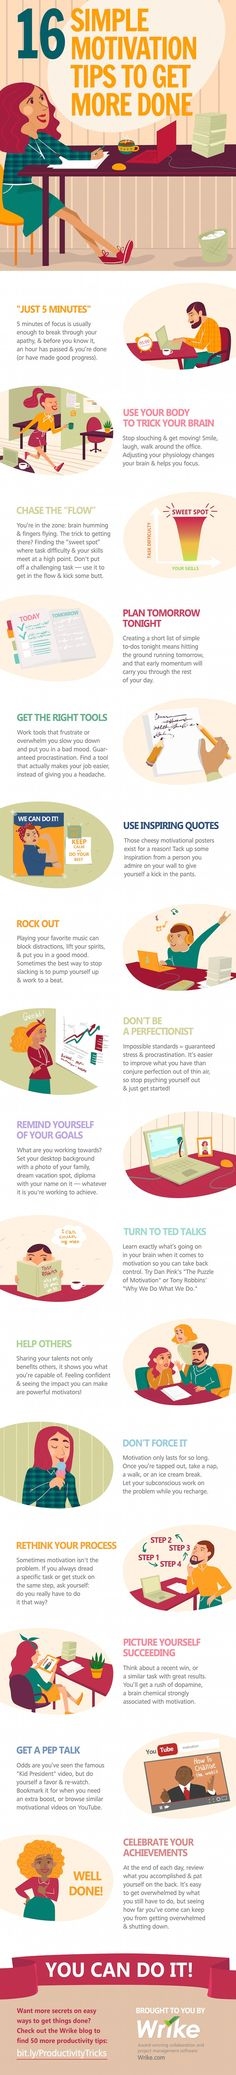 16 Simple Motivation Tips to Get More Done #Infographic